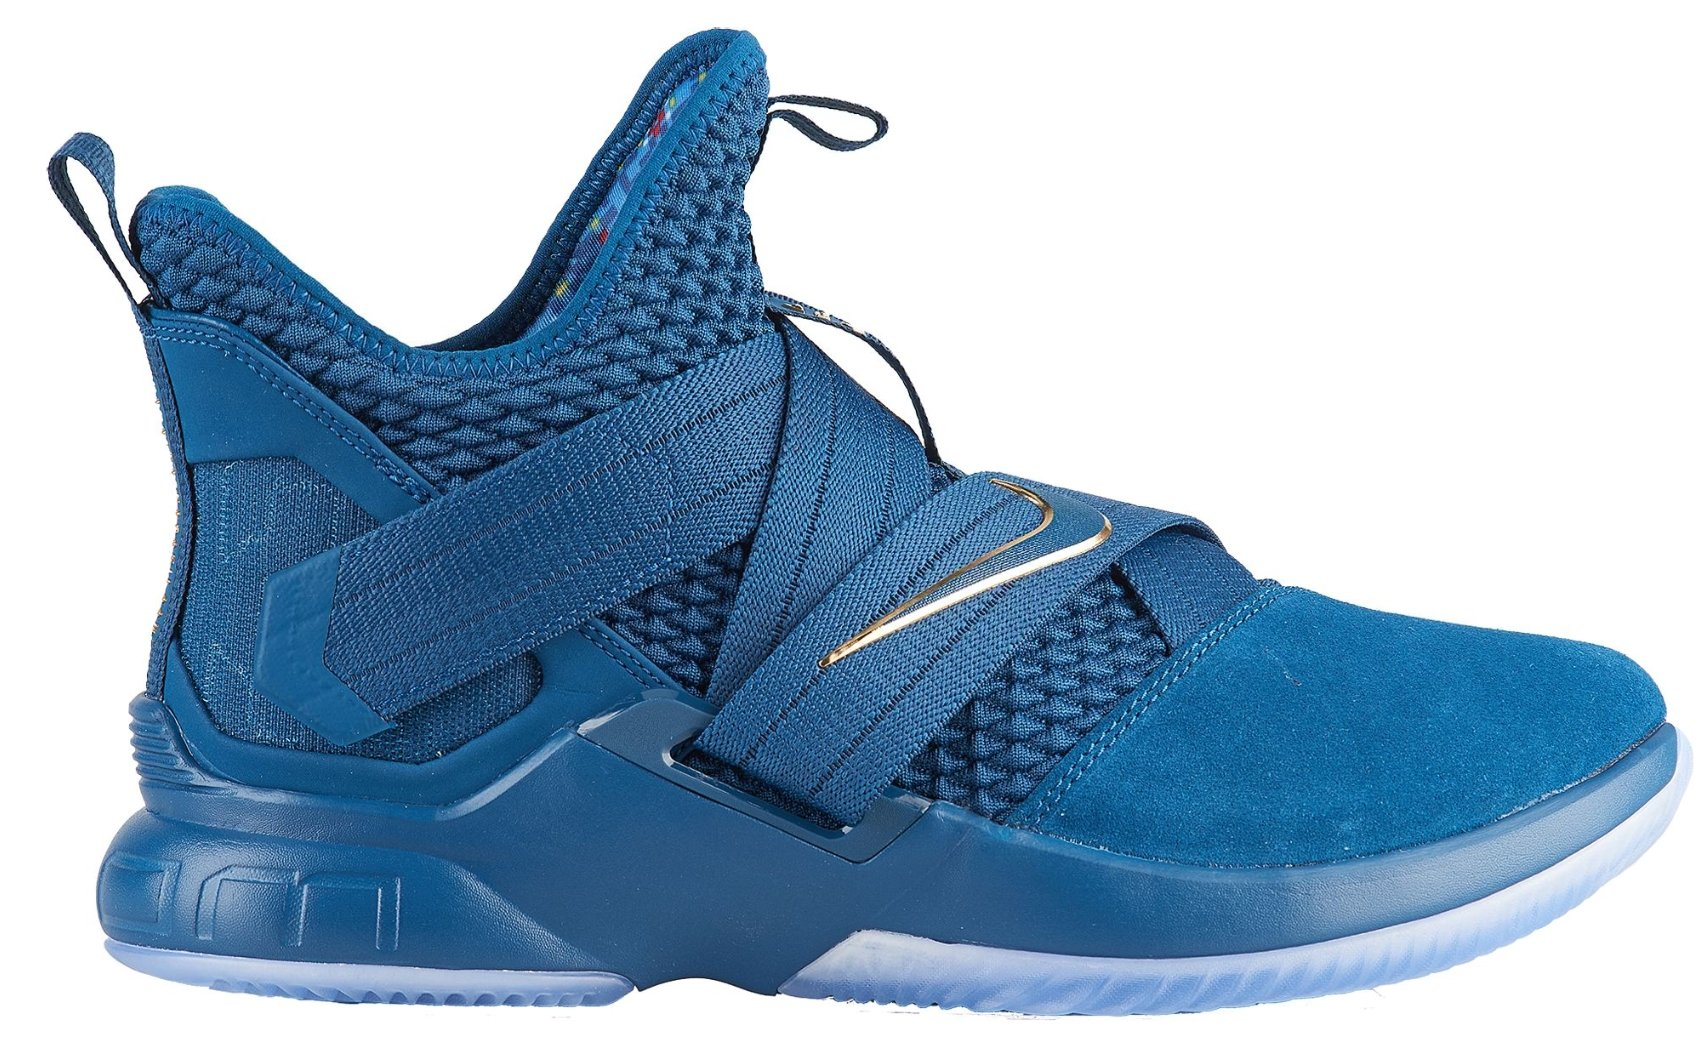 69ea9a4a9d04 Nike Lebron Soldier XII SFG Mens Ao4054-400 Size 15